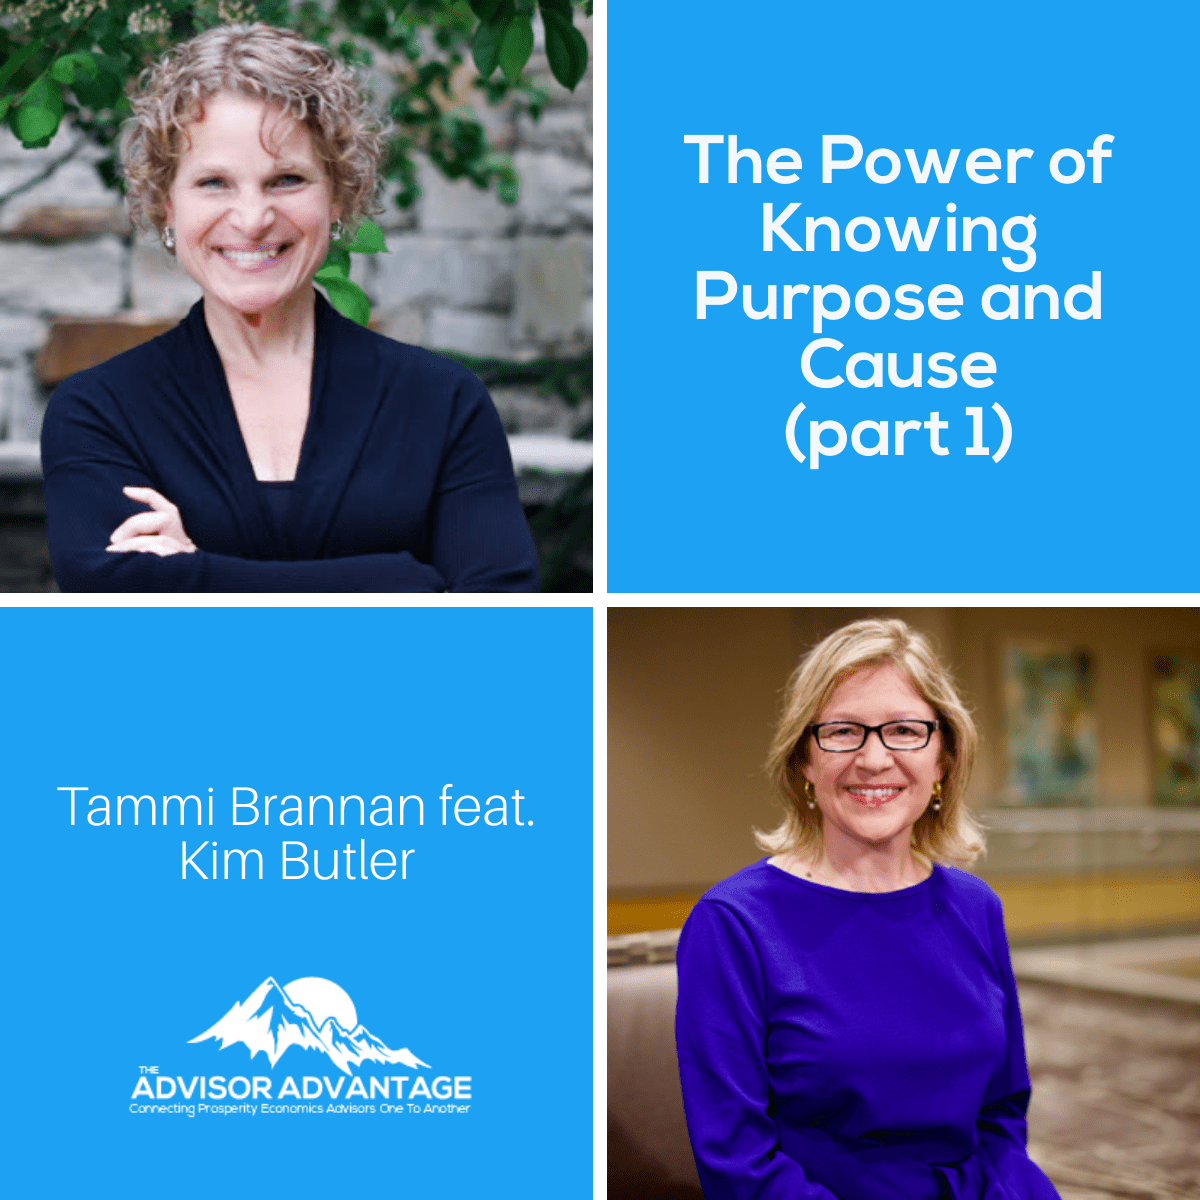 The Power of Knowing Purpose and Cause with Kim Butler (part 1) – Episode 219